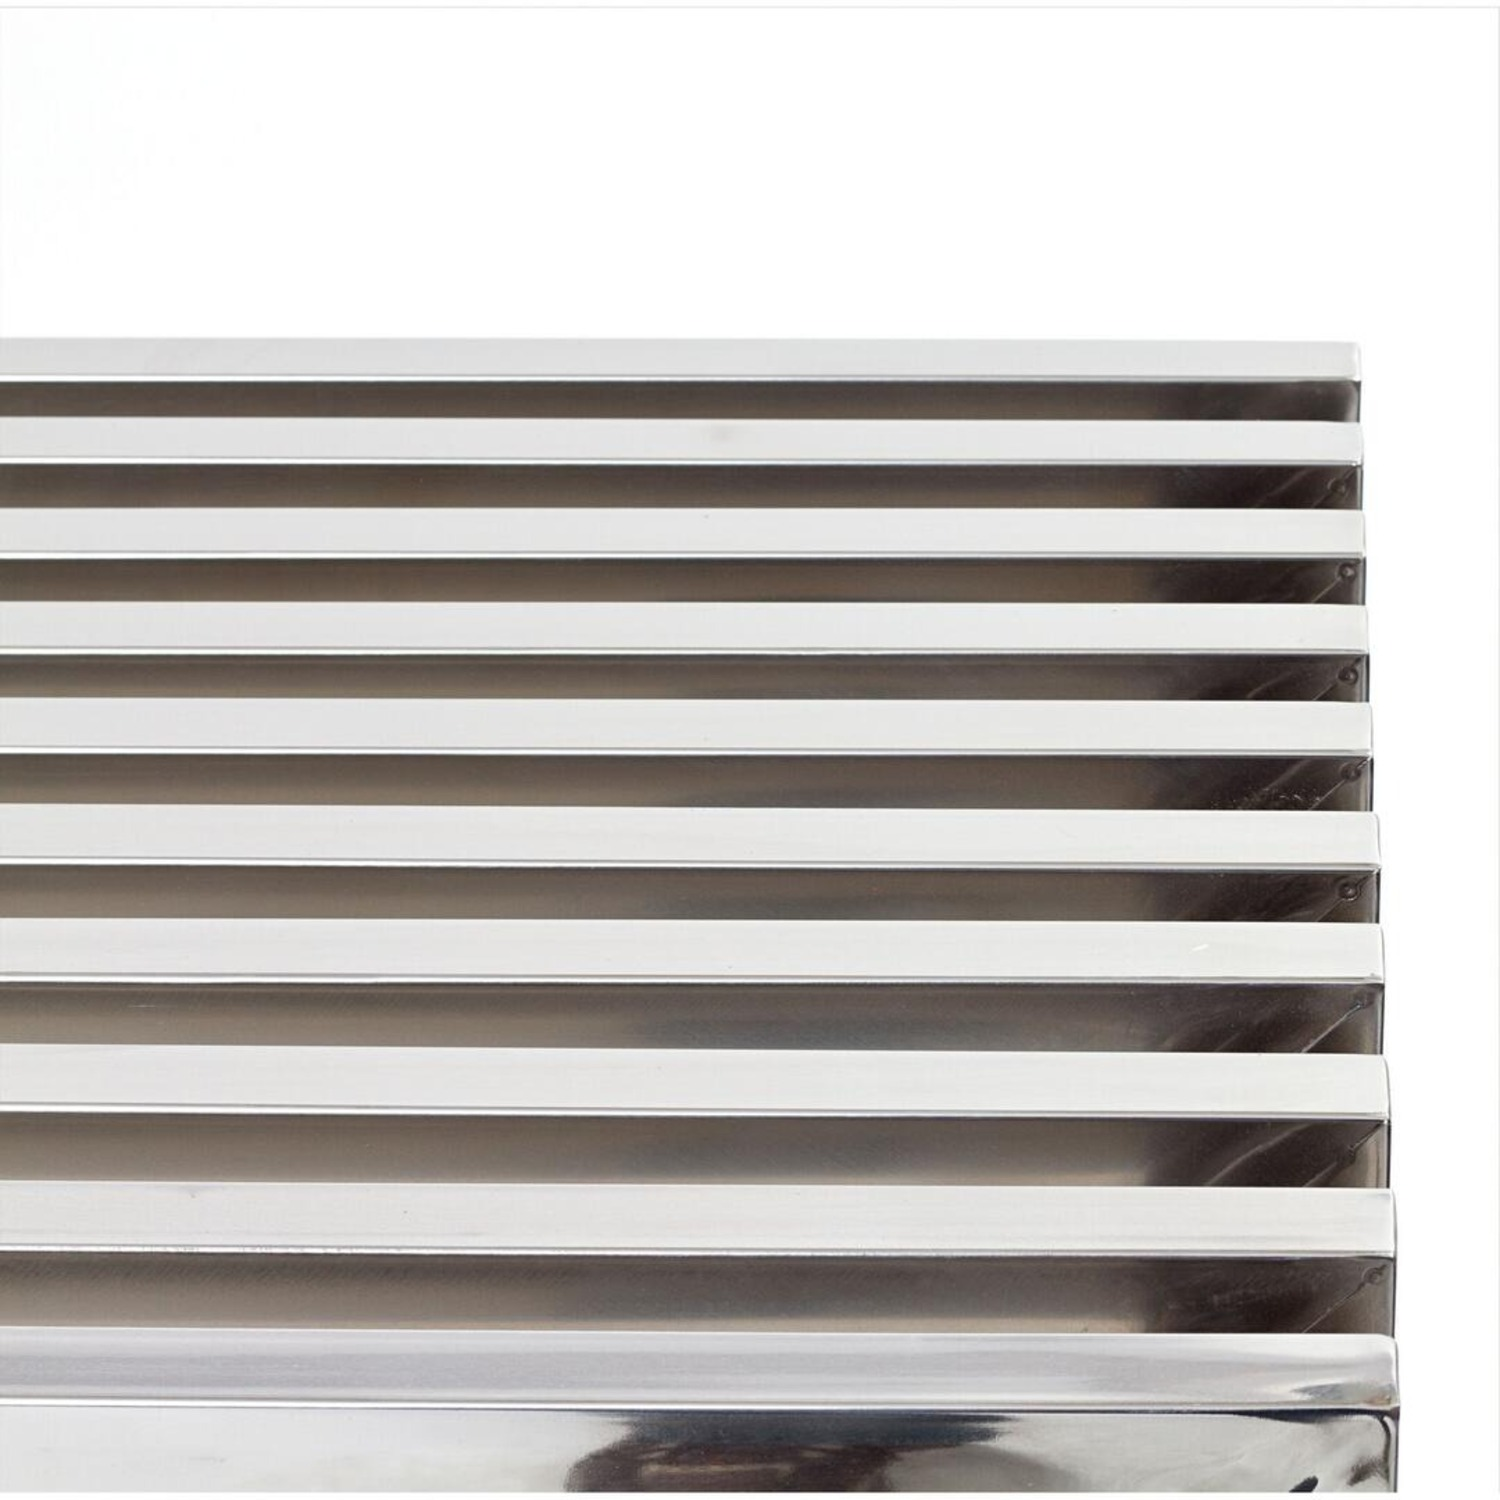 Bench In Silver Medium Stainless Steel Finish - image-2